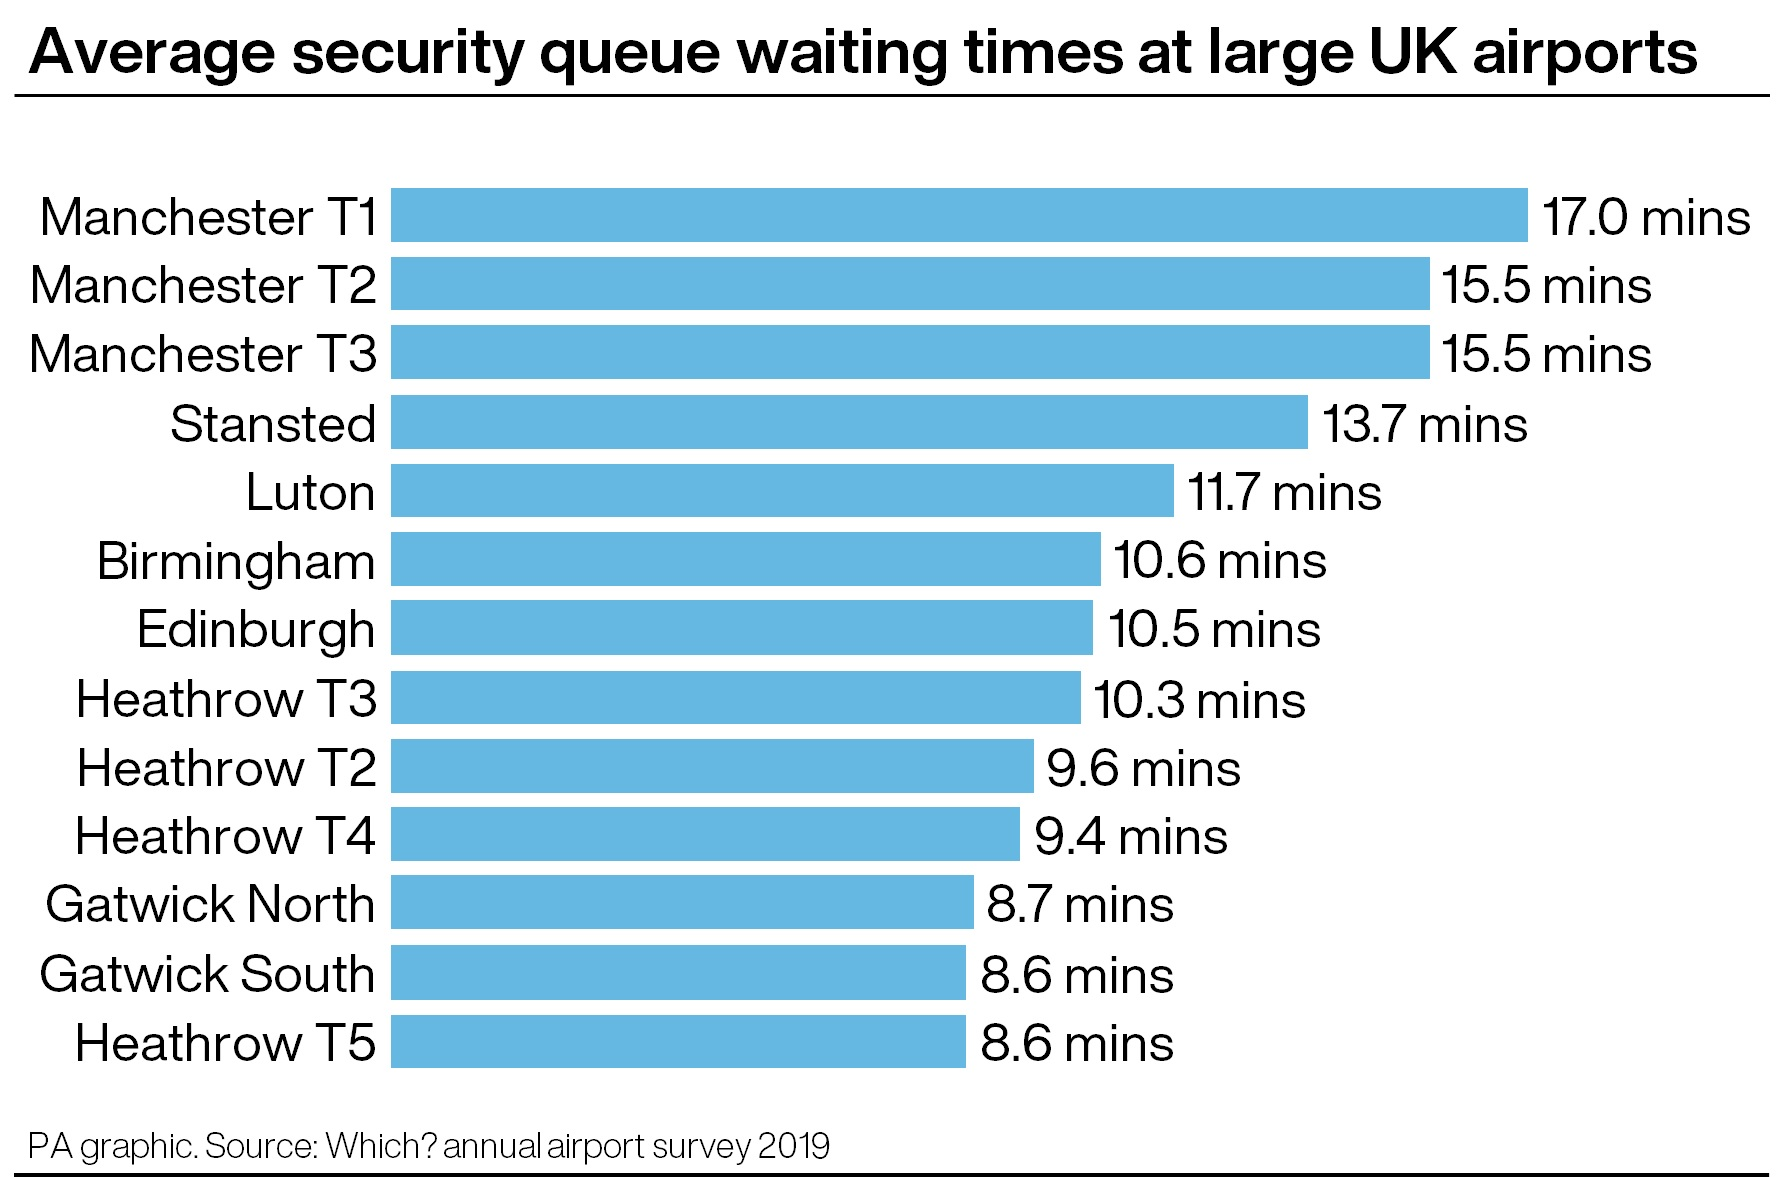 Airport security queue waiting times at large UK airports